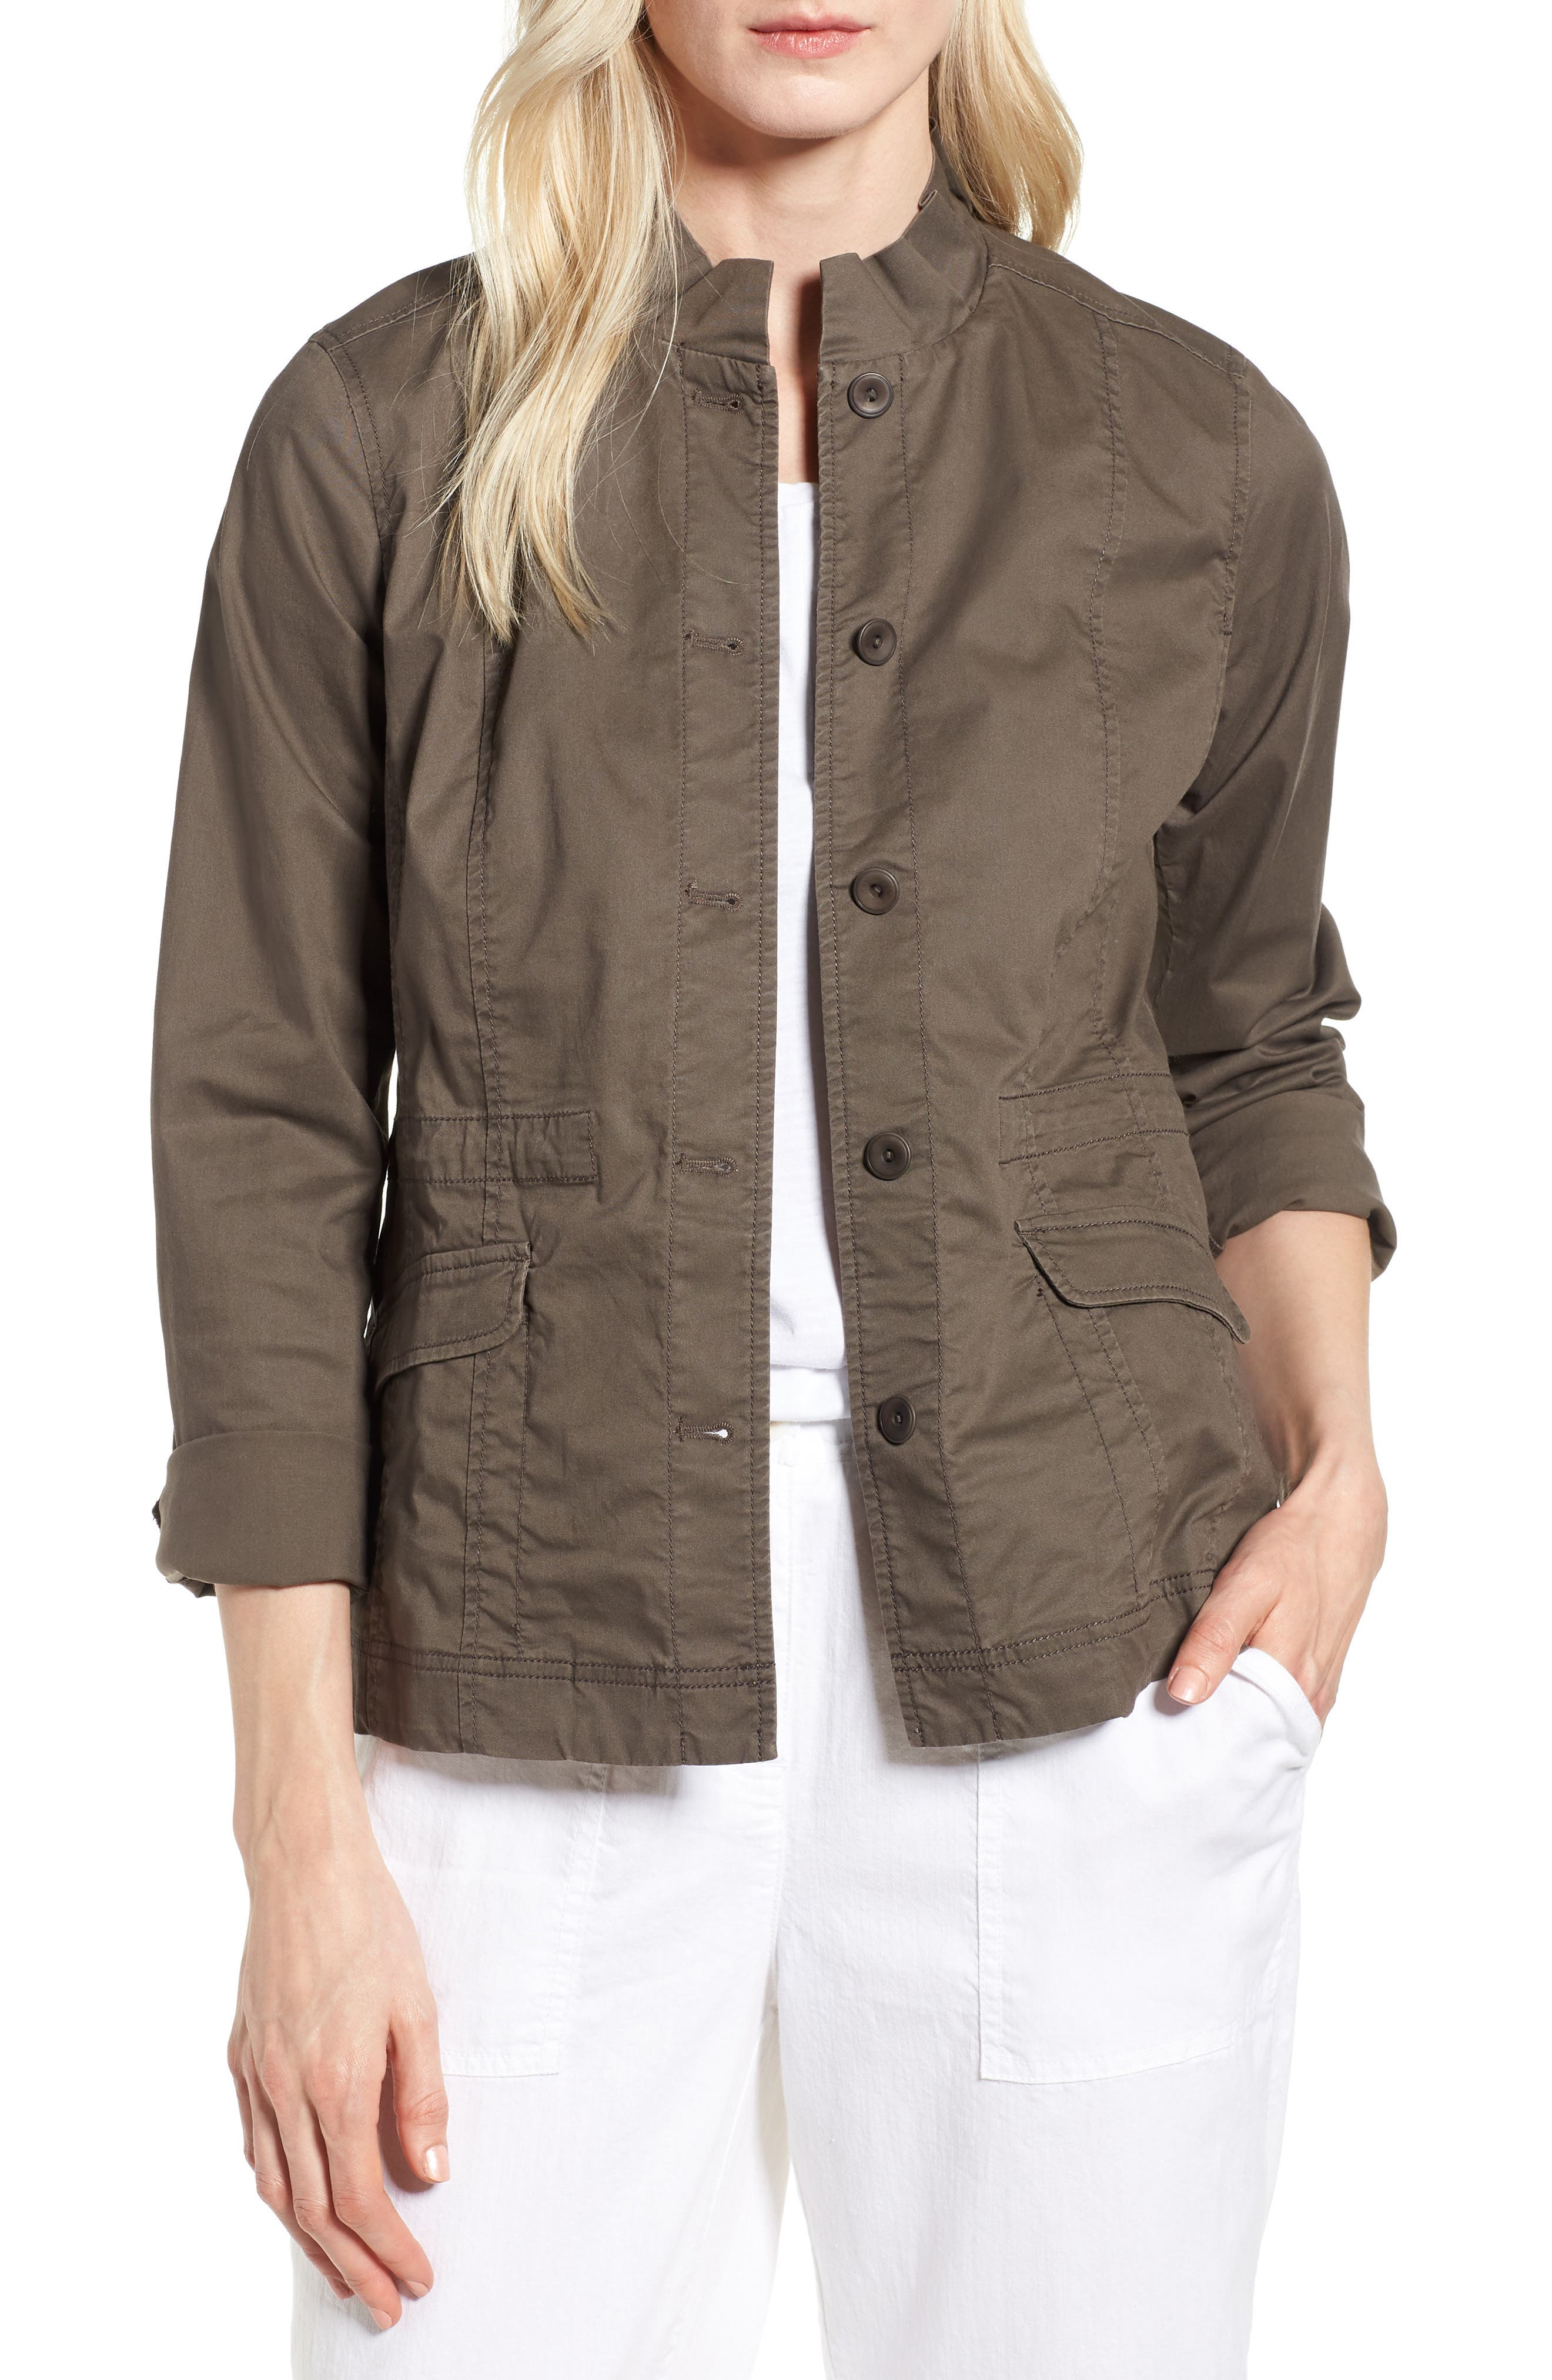 Ruffle Collar Organic Cotton Blend Jacket,                         Main,                         color, Rye